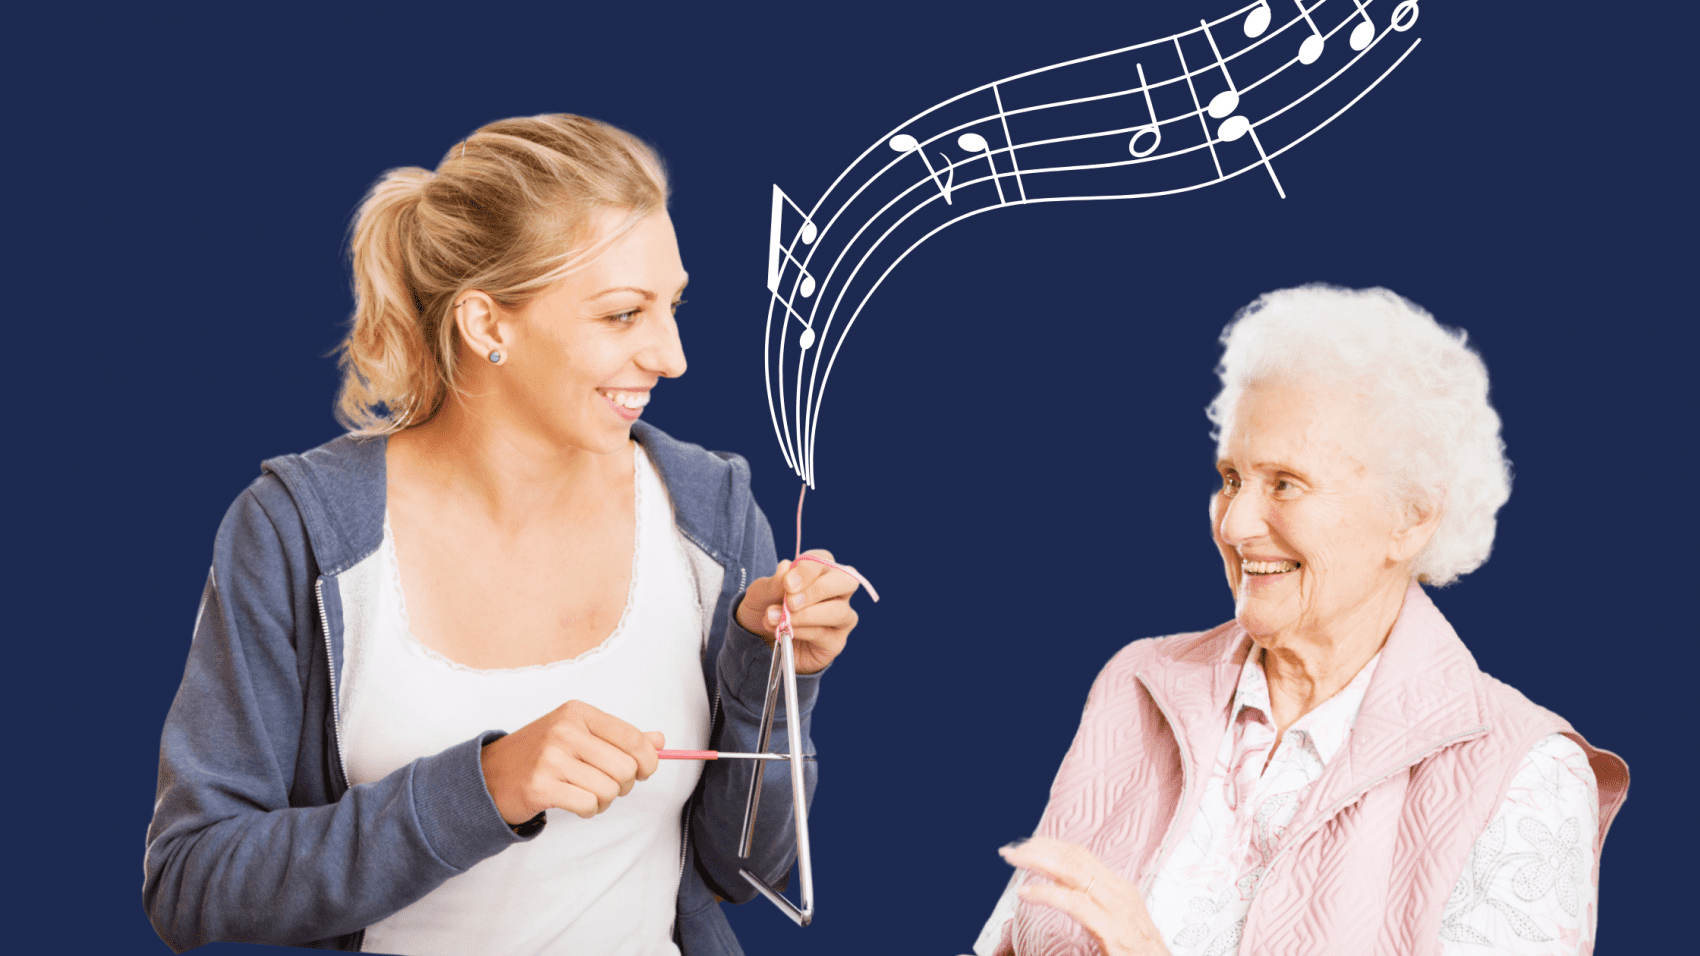 What Exactly is Music Therapy?